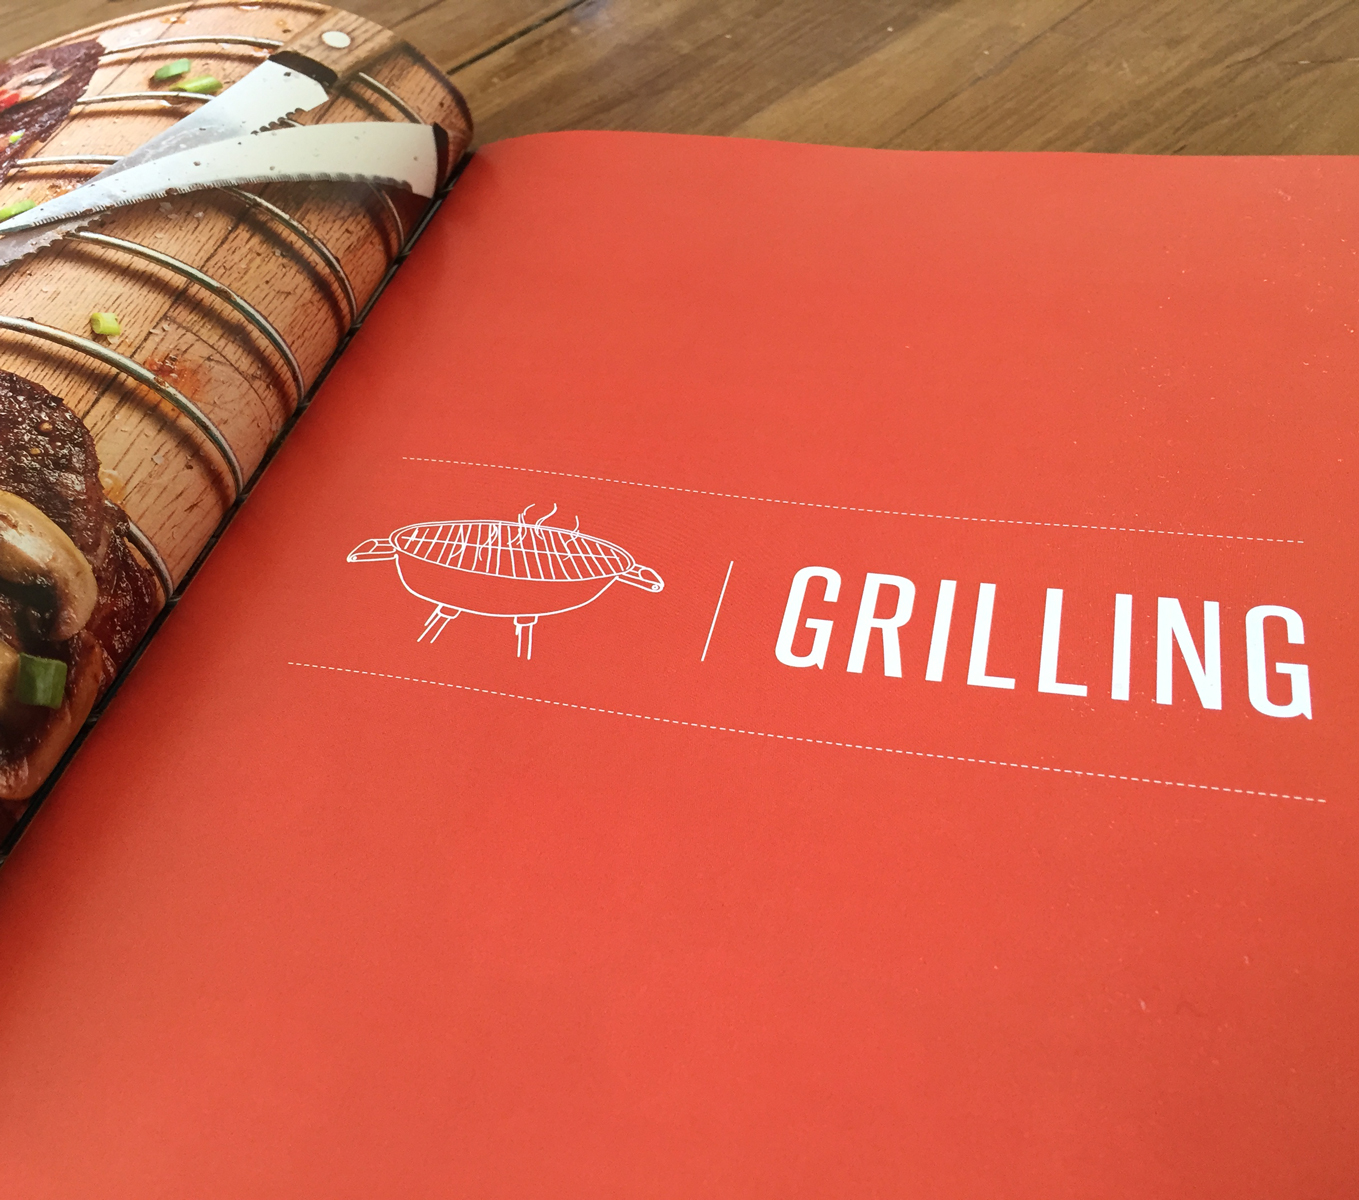 grilling-illustration-pm-cookbook-design